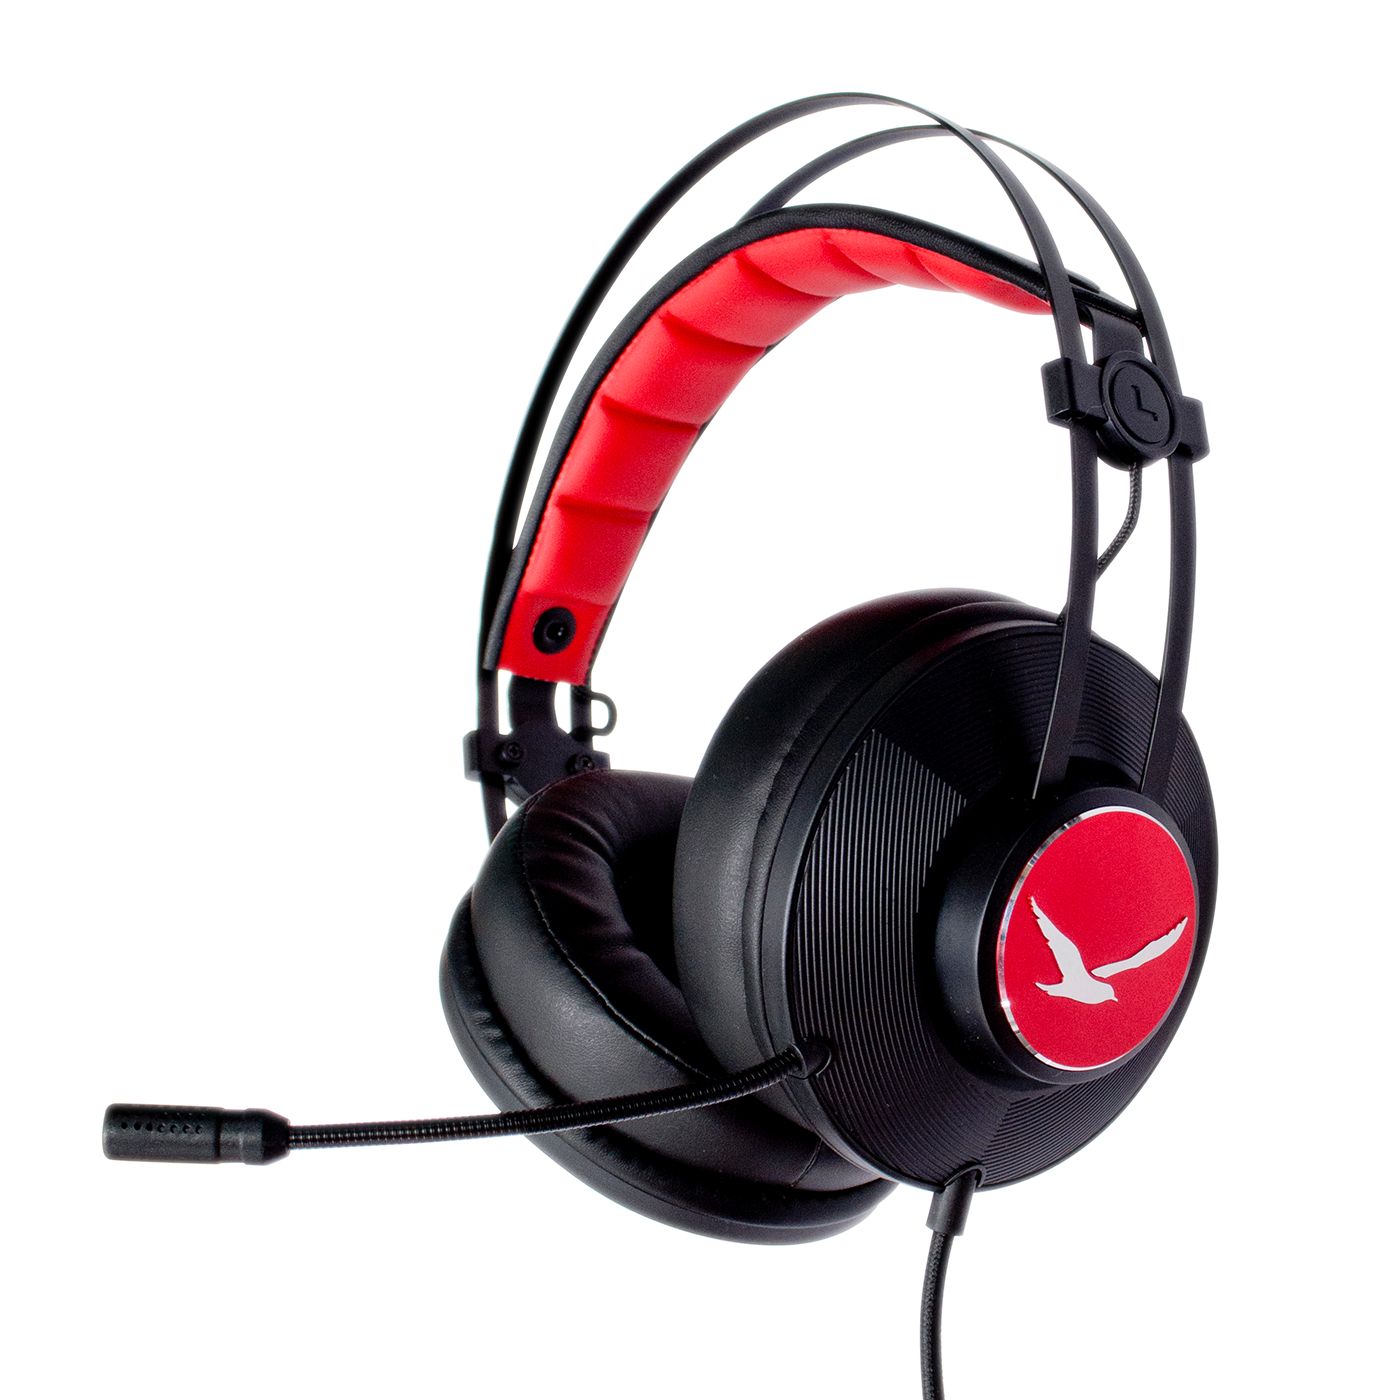 Digifast Apollo X2 headset with noise-canceling microphone angled view